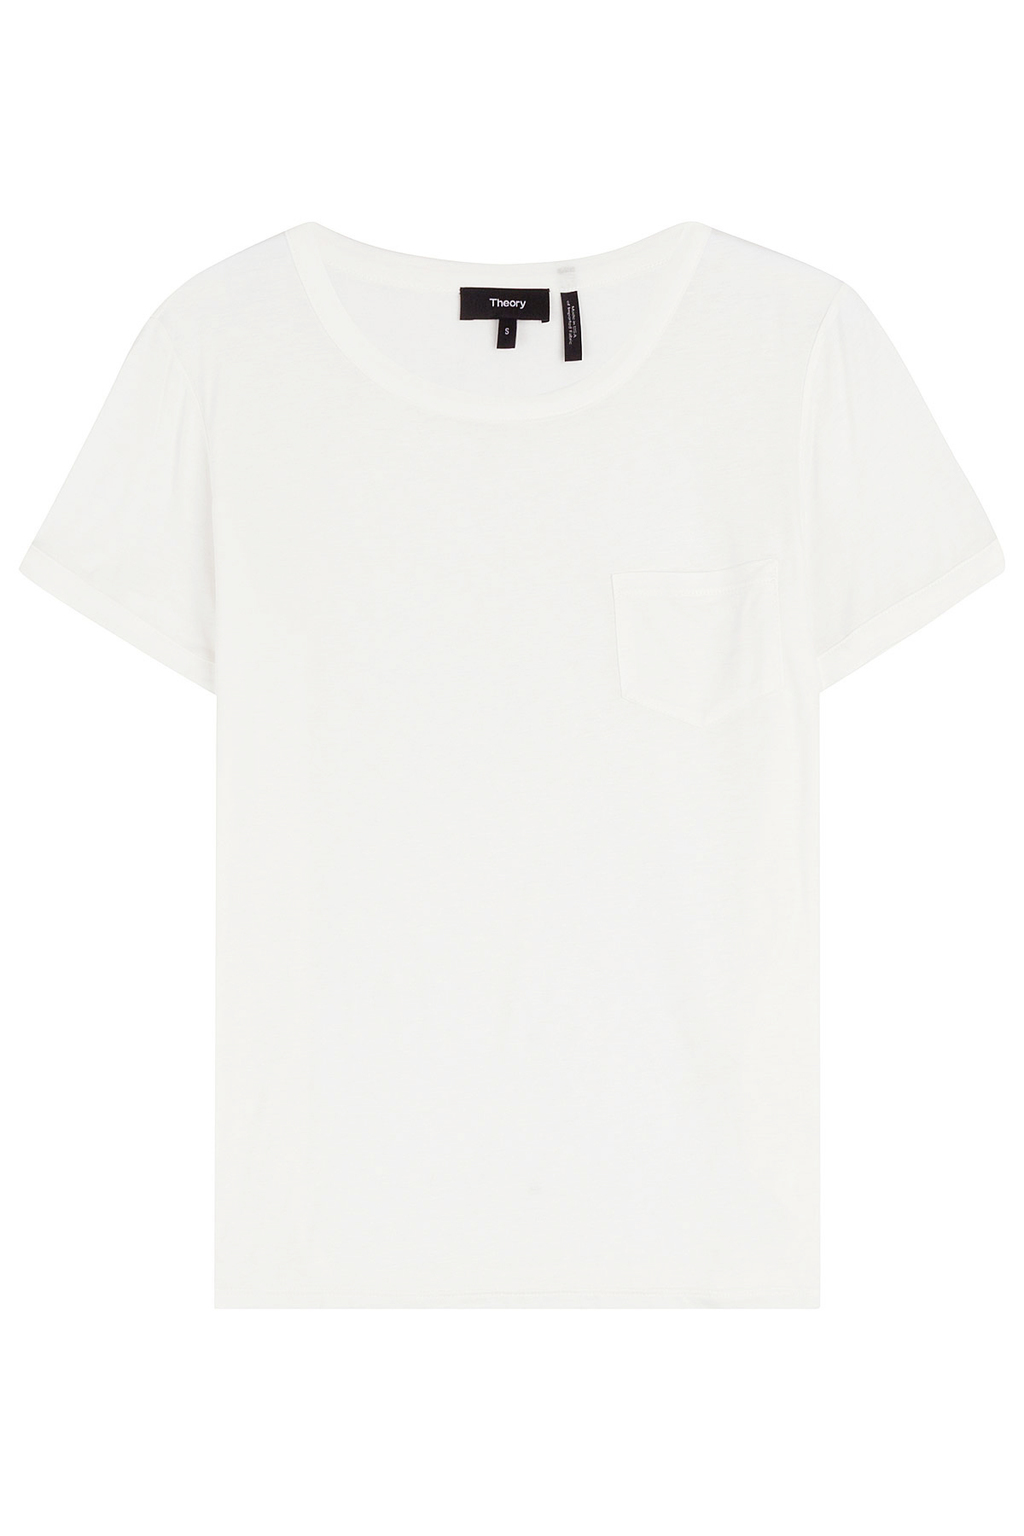 Jersey T Shirt - neckline: round neck; pattern: plain; style: t-shirt; predominant colour: white; occasions: casual; length: standard; fibres: cotton - 100%; fit: straight cut; sleeve length: short sleeve; sleeve style: standard; pattern type: fabric; texture group: jersey - stretchy/drapey; season: s/s 2016; wardrobe: basic